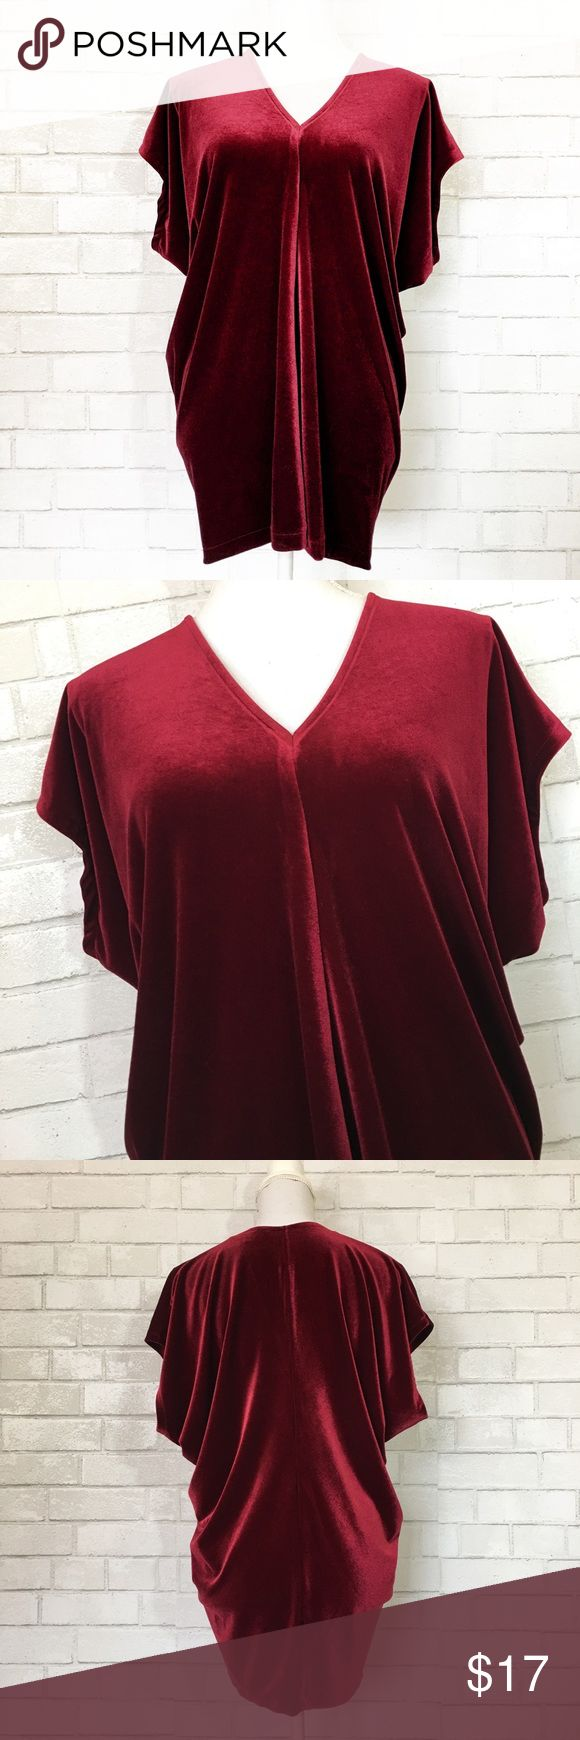 Lands End Ruby Red Velvet Dolman Tunic Top Preowned Great Used Condition Some Minor Wear On Right Sleeve Size Small Tunic Tops Clothes Design Ruby Red Velvet [ 1740 x 580 Pixel ]